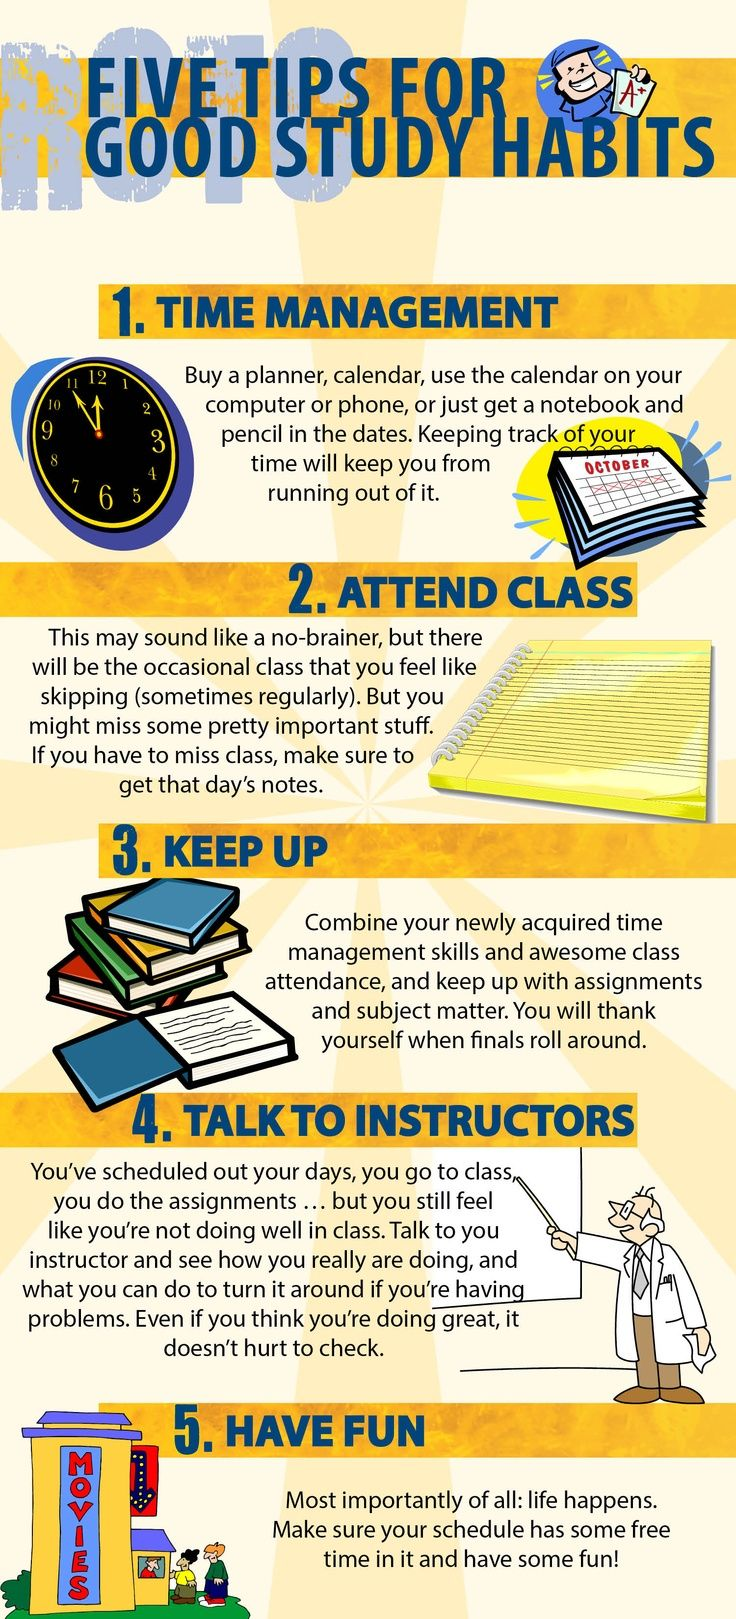 Five tips for good study habits studying tips, study tips #study #college